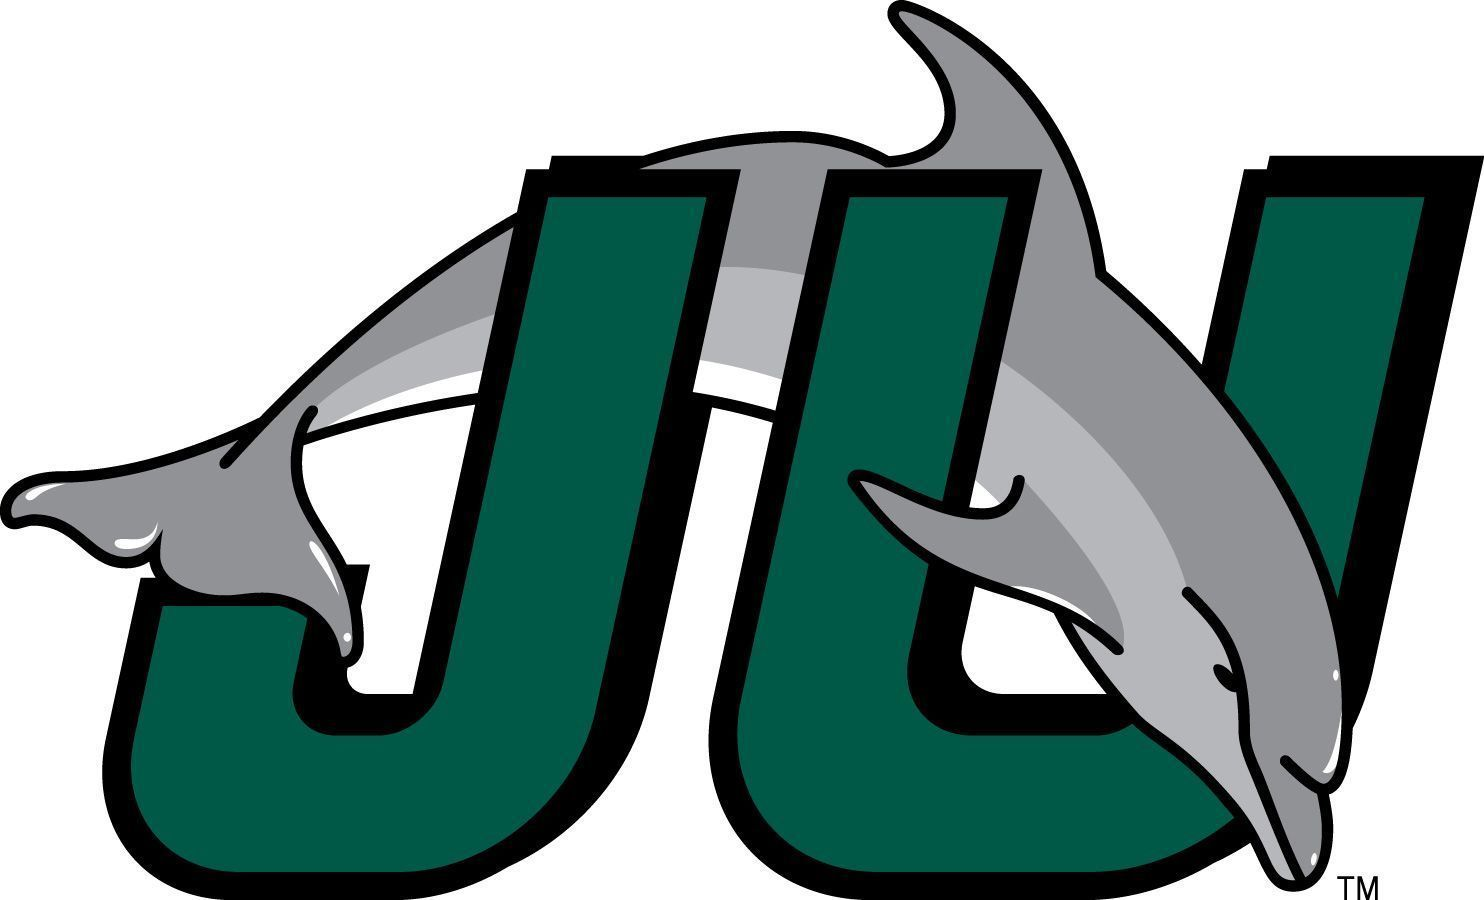 Atlantic Sun Conference Asun National Collegiate Athletic Association Div I Fcs Http Www Payscale Co Jacksonville University Usc Basketball College Logo